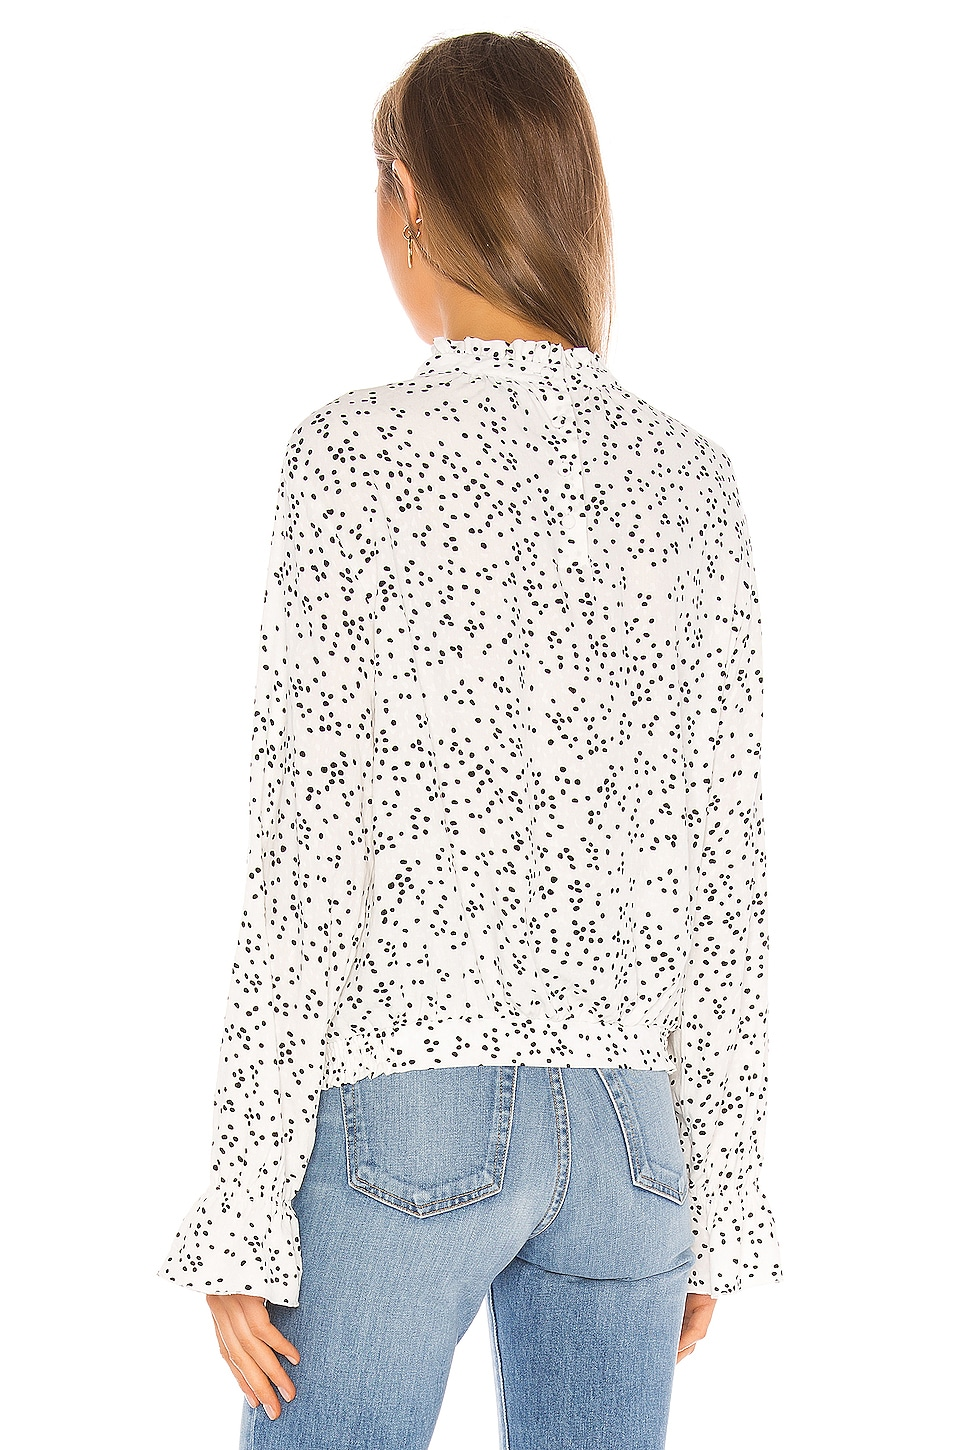 Solstice Mock Neck Blouse, view 3, click to view large image.